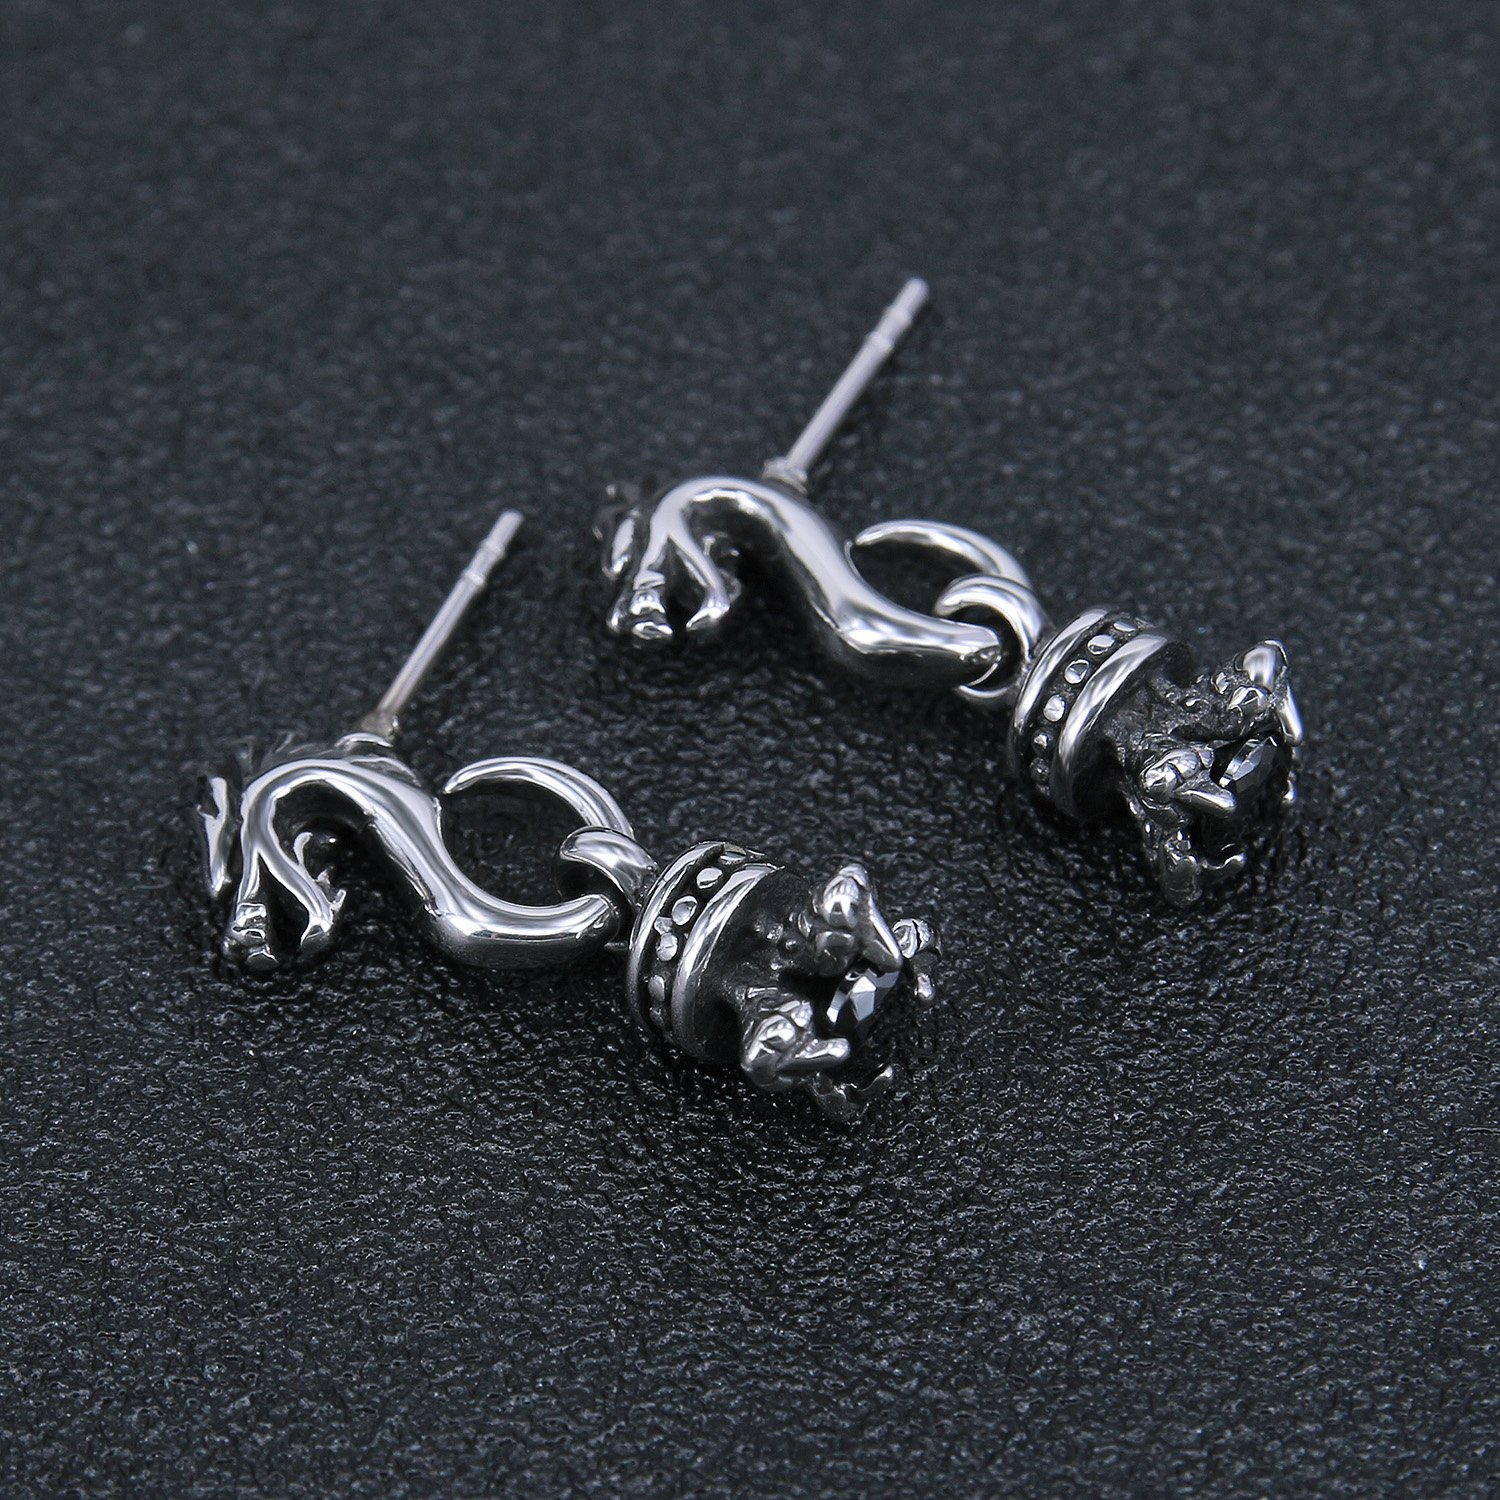 Vintage Sword Skull Rose Drop Dangle Stud Earrings 316L Surgical Steel Punk Cartilage Earrings Mens Women (Dragon Style) by PiercingCool (Image #3)